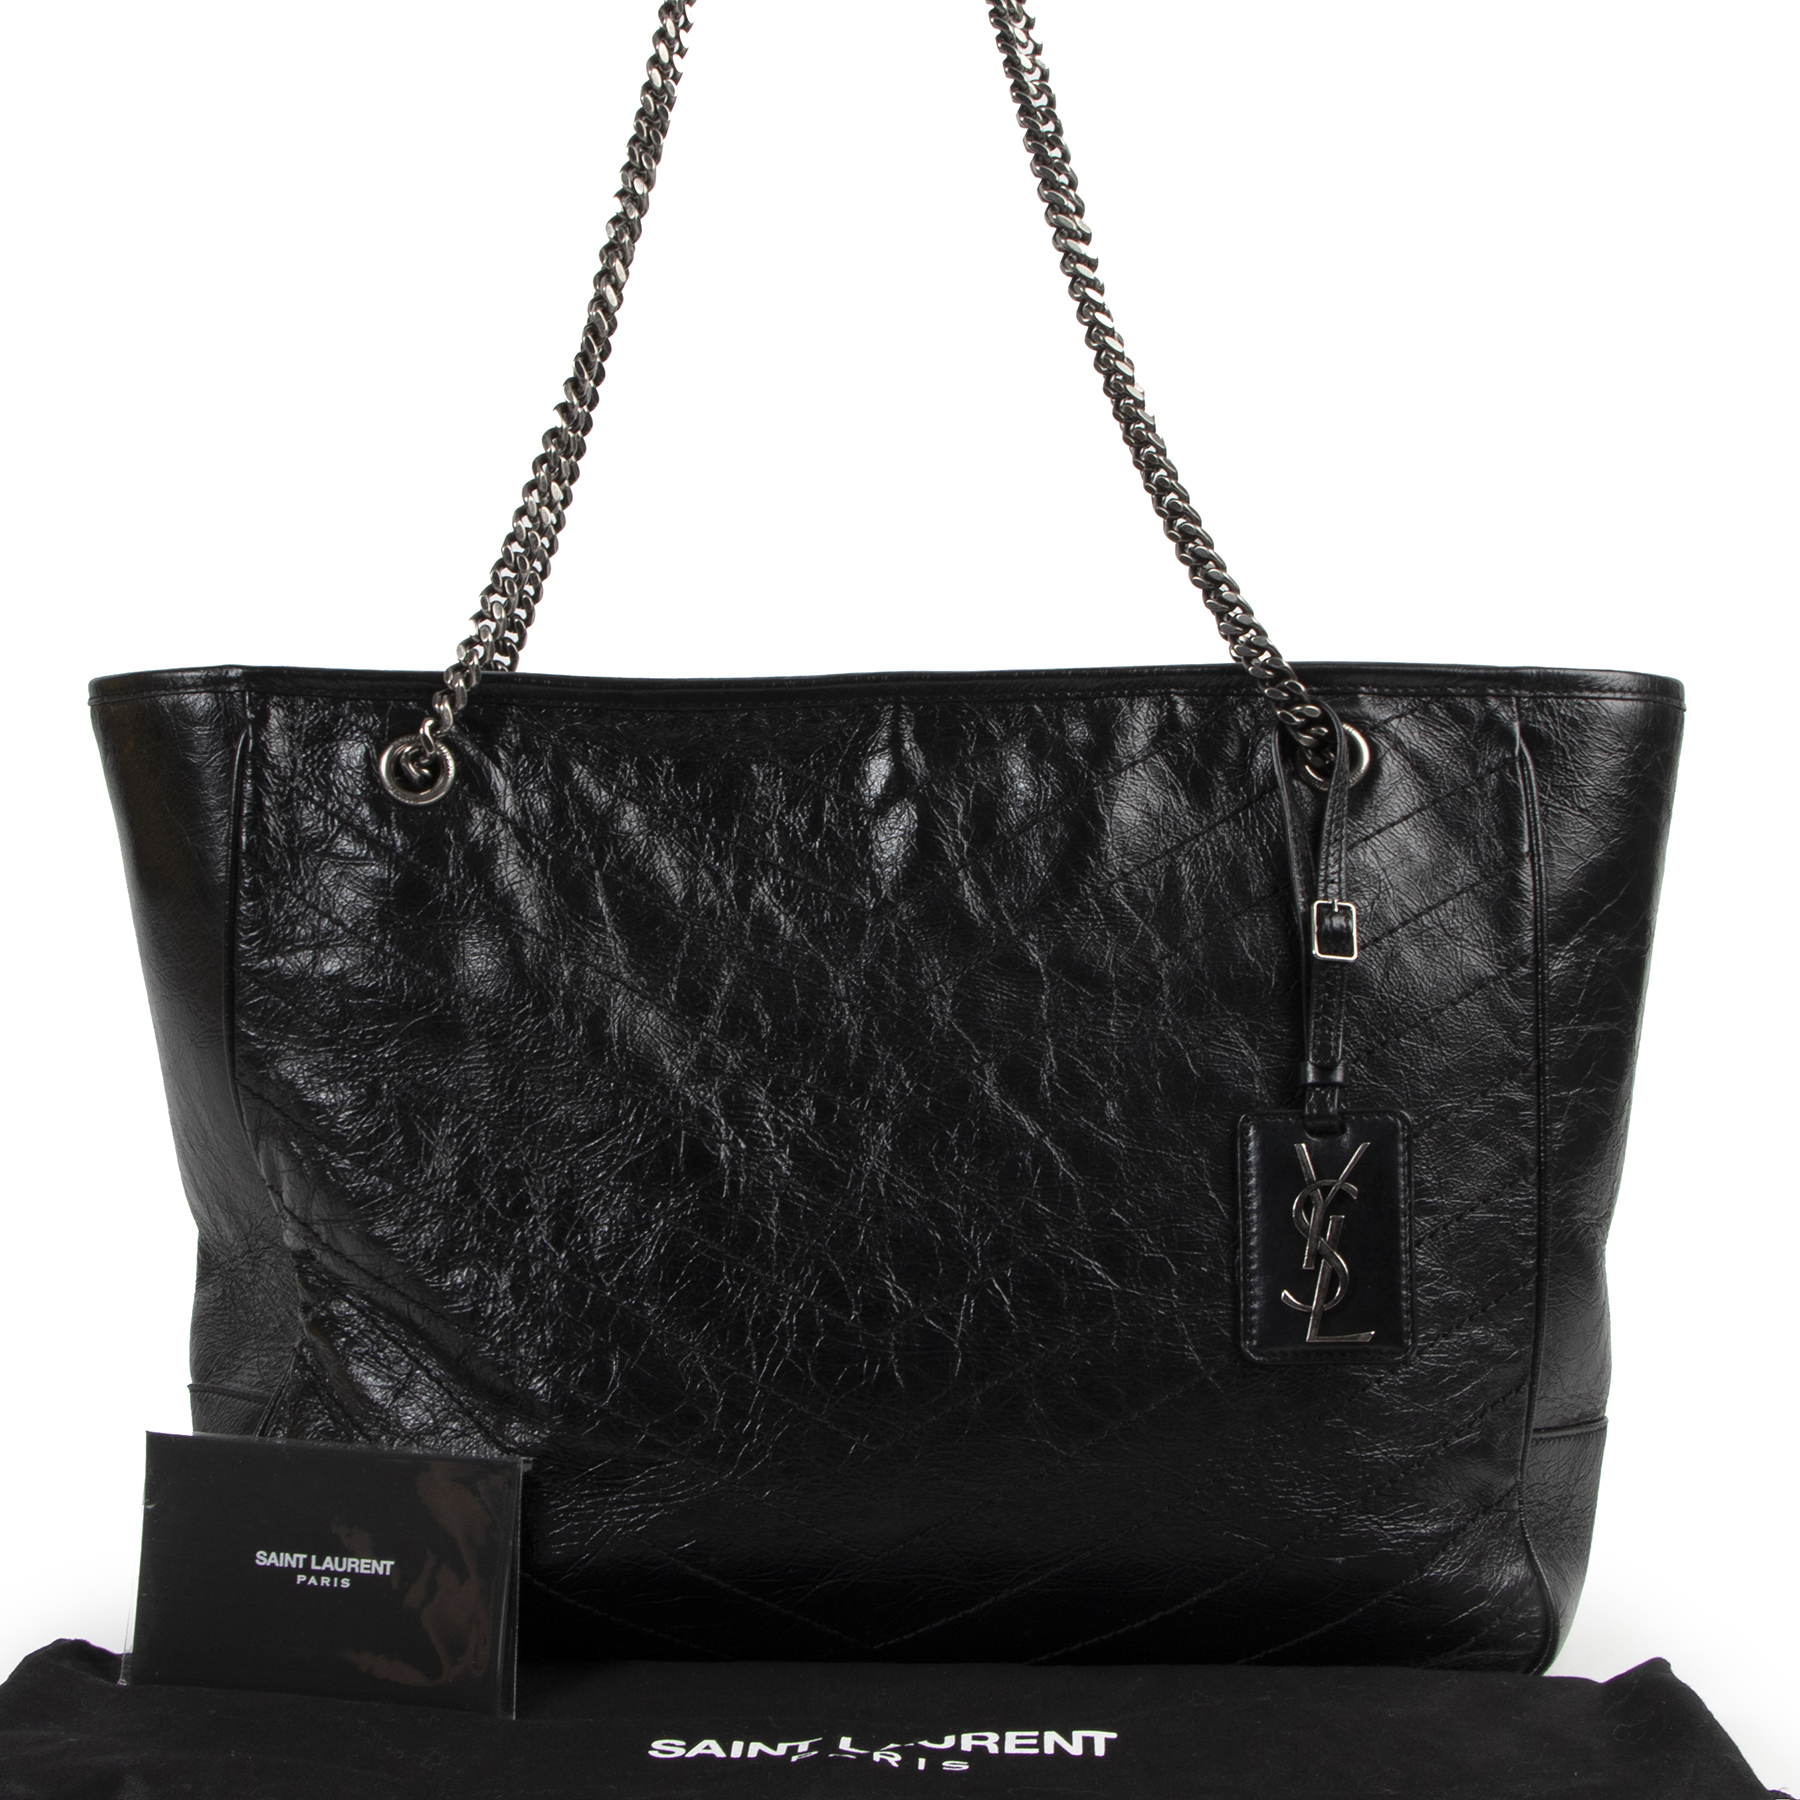 Saint Laurent Black Niki Quilted Leather Tote Bag